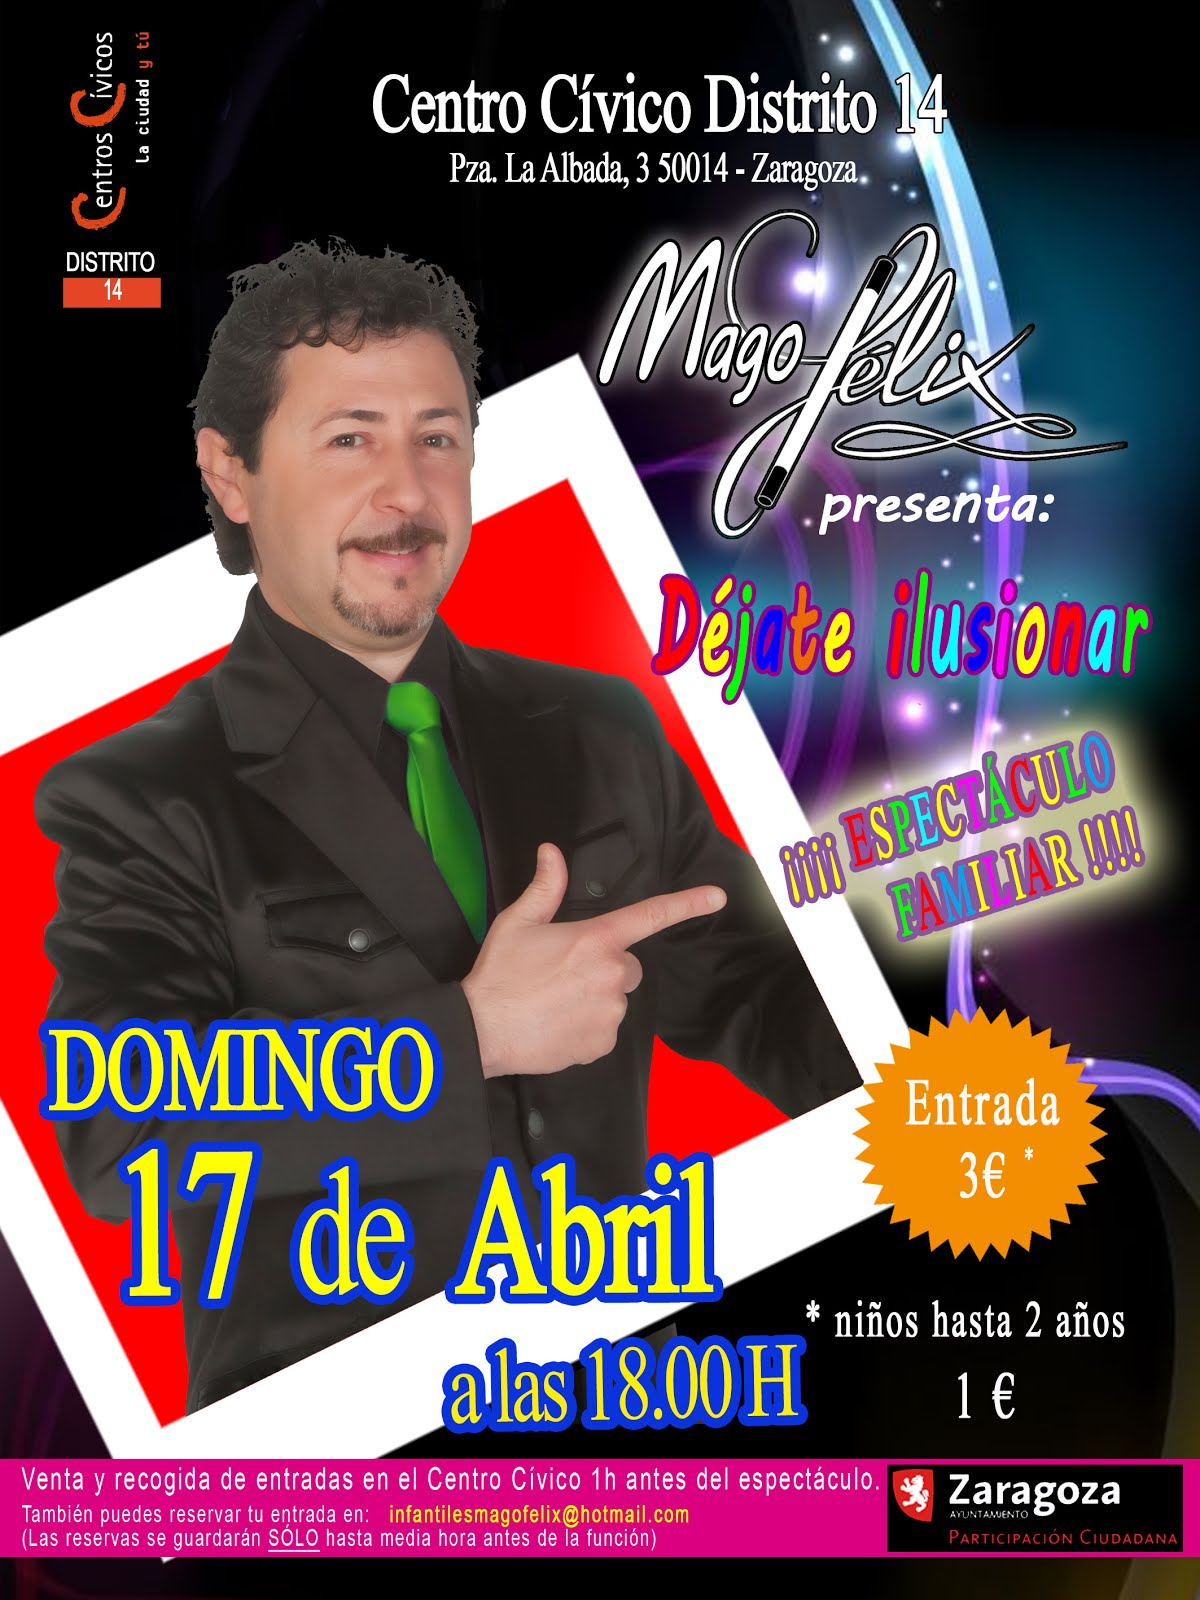 Domingo 17 de Abril de 2016